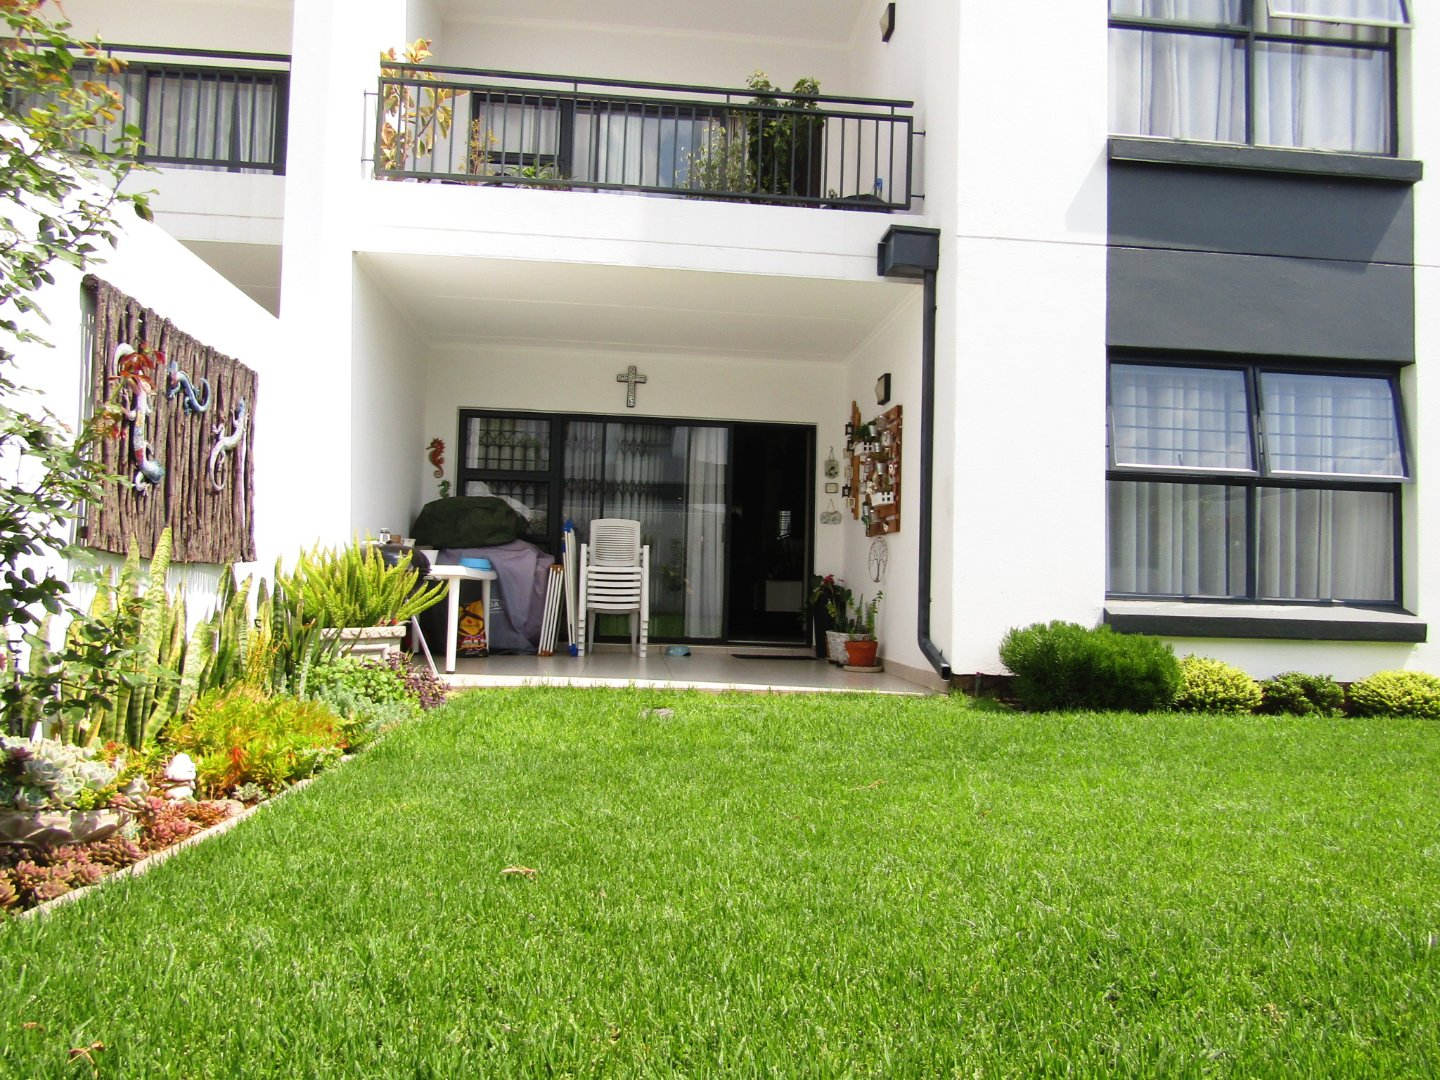 Stunning 3 Bedroom Townhouse for Sale in Greenstone Hill